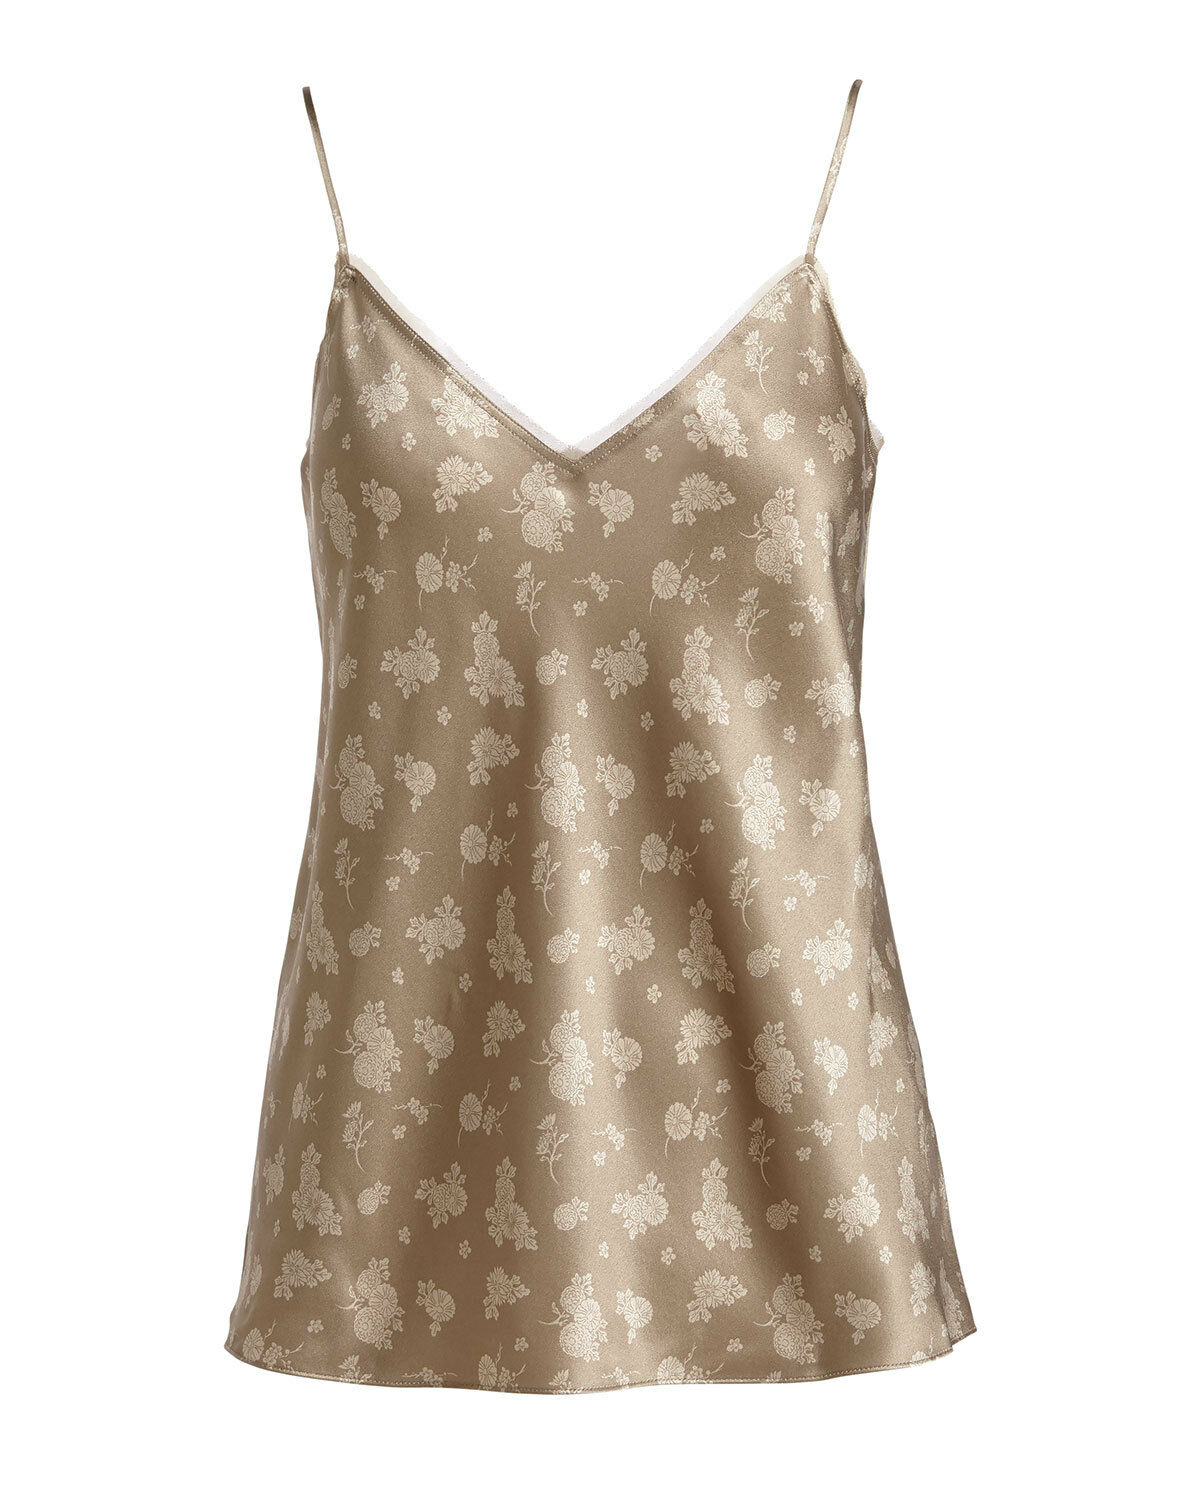 VINCE Calico Floral Silk Satin V-Neck Camisole Top, Small